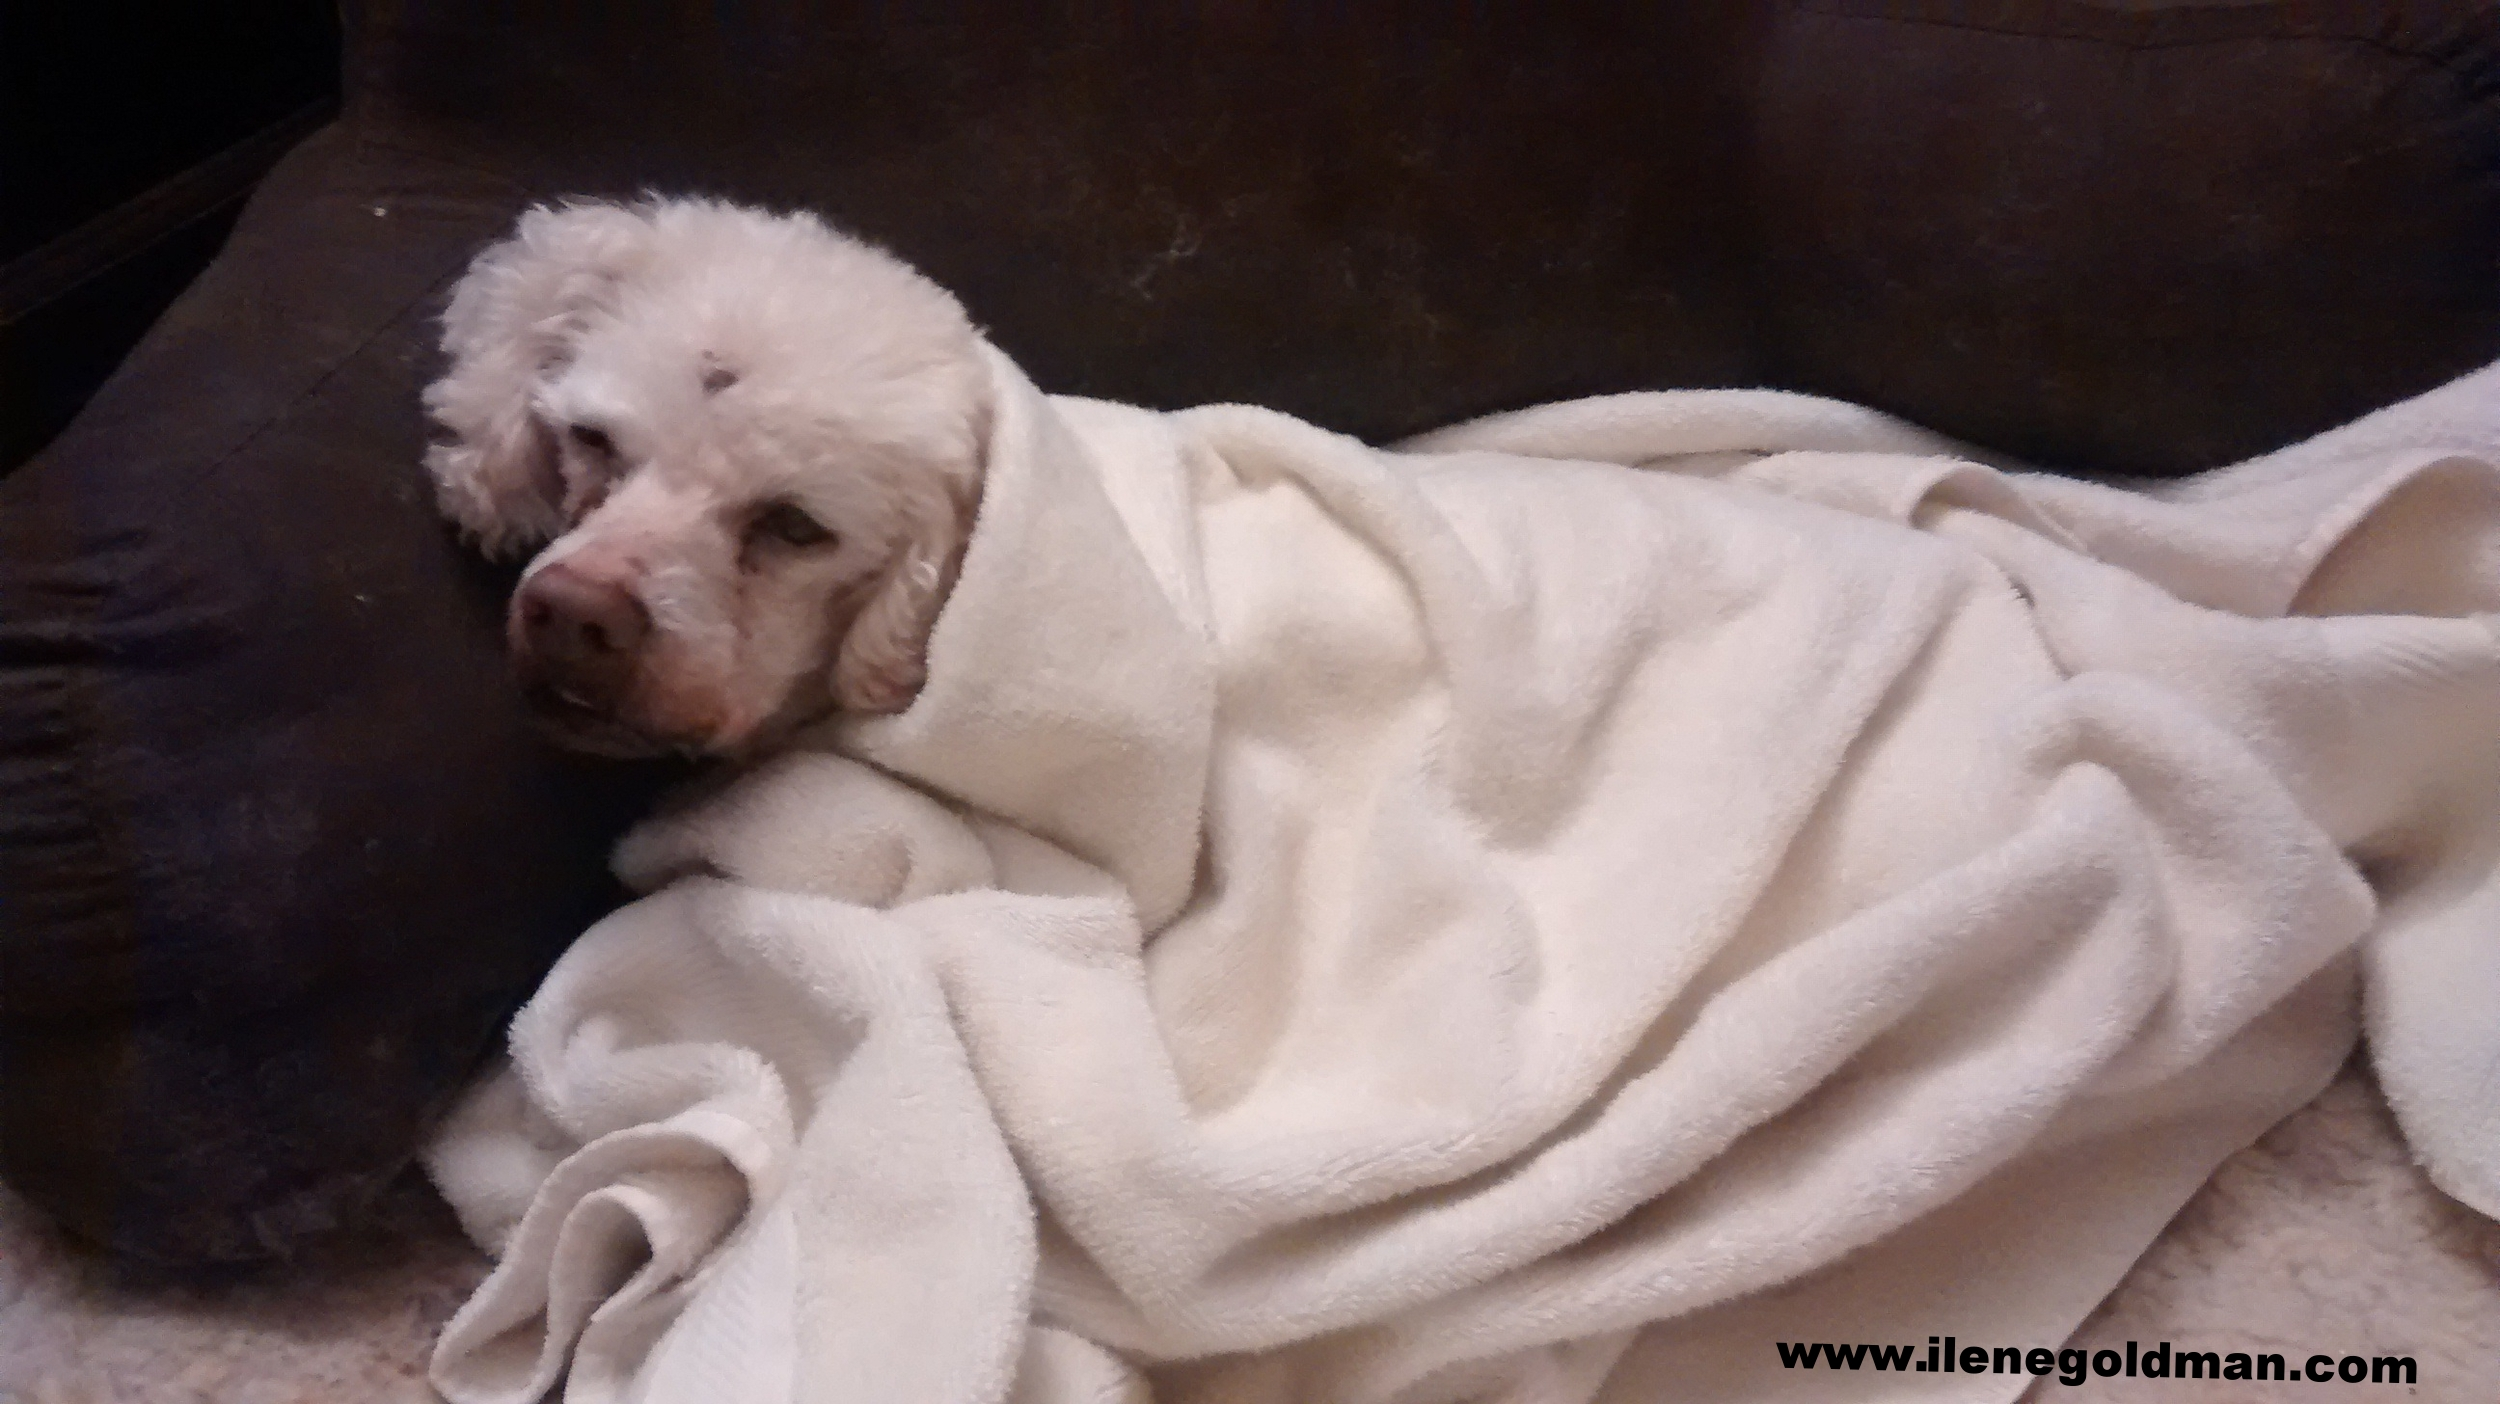 Benji wrapped in a warm, fresh-from-the-dryer towel on a cold autumn night, two nights before he died.